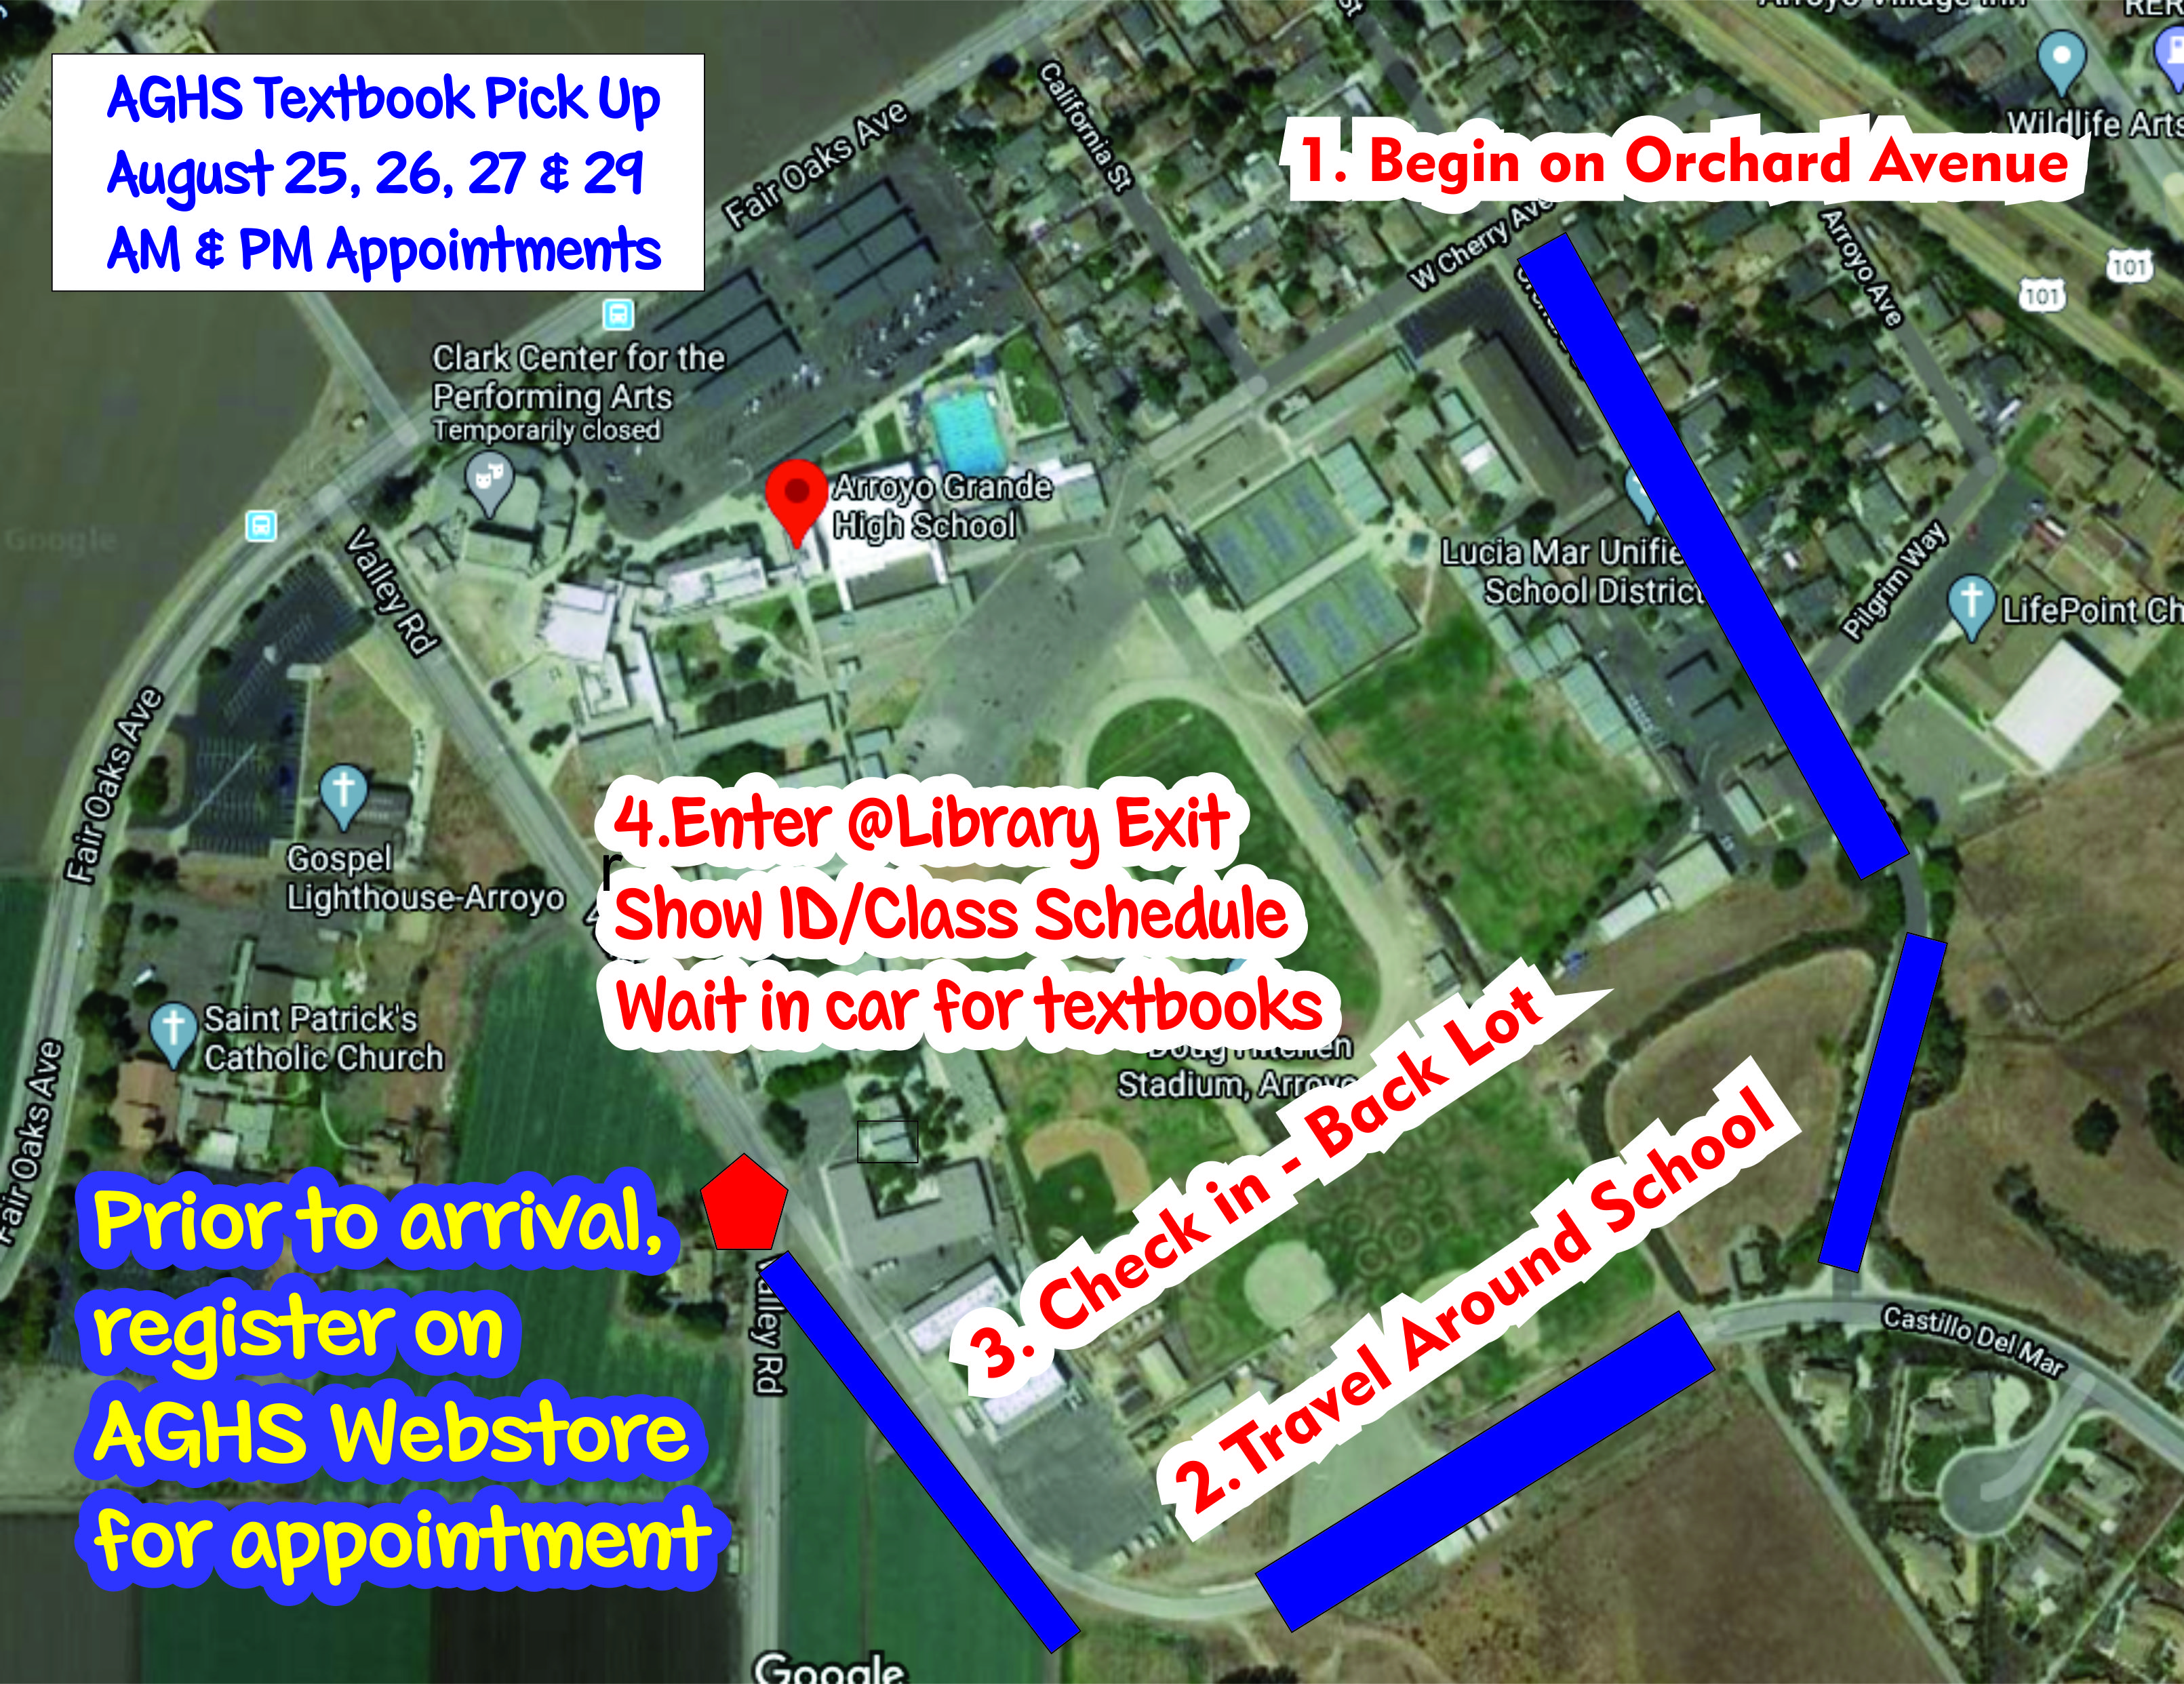 Map for Textbook arrival